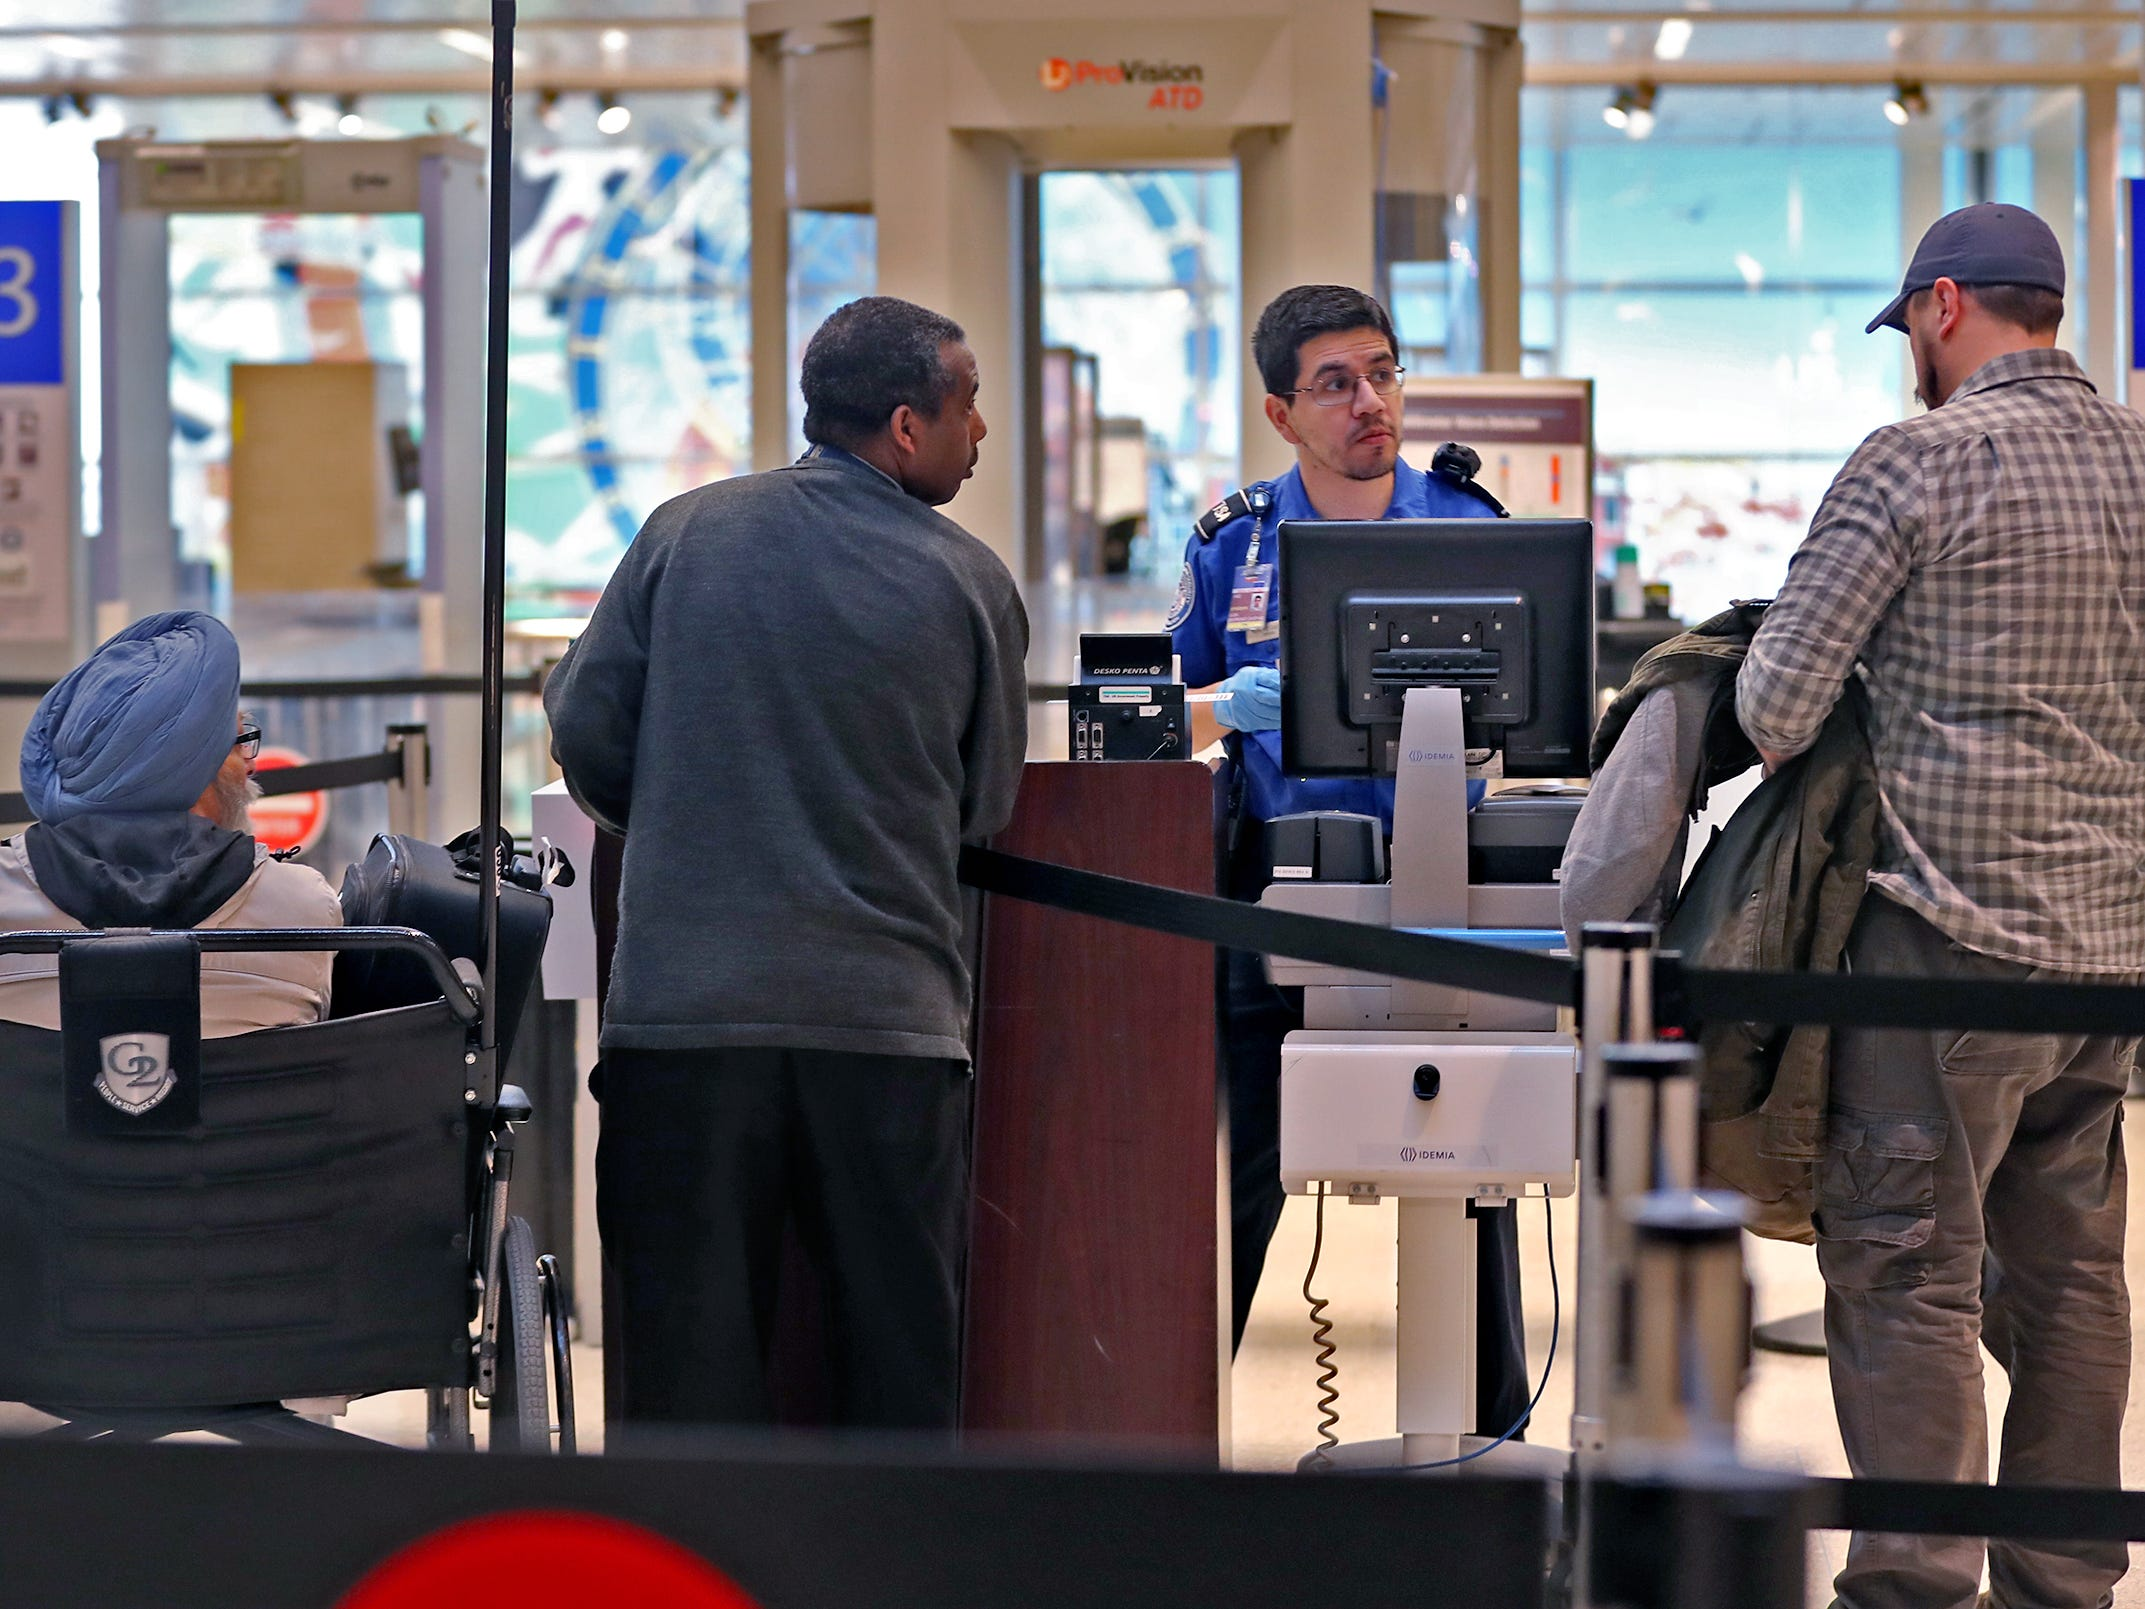 Travelers go through security at the Indianapolis International Airport, Tuesday, Jan. 15, 2019.